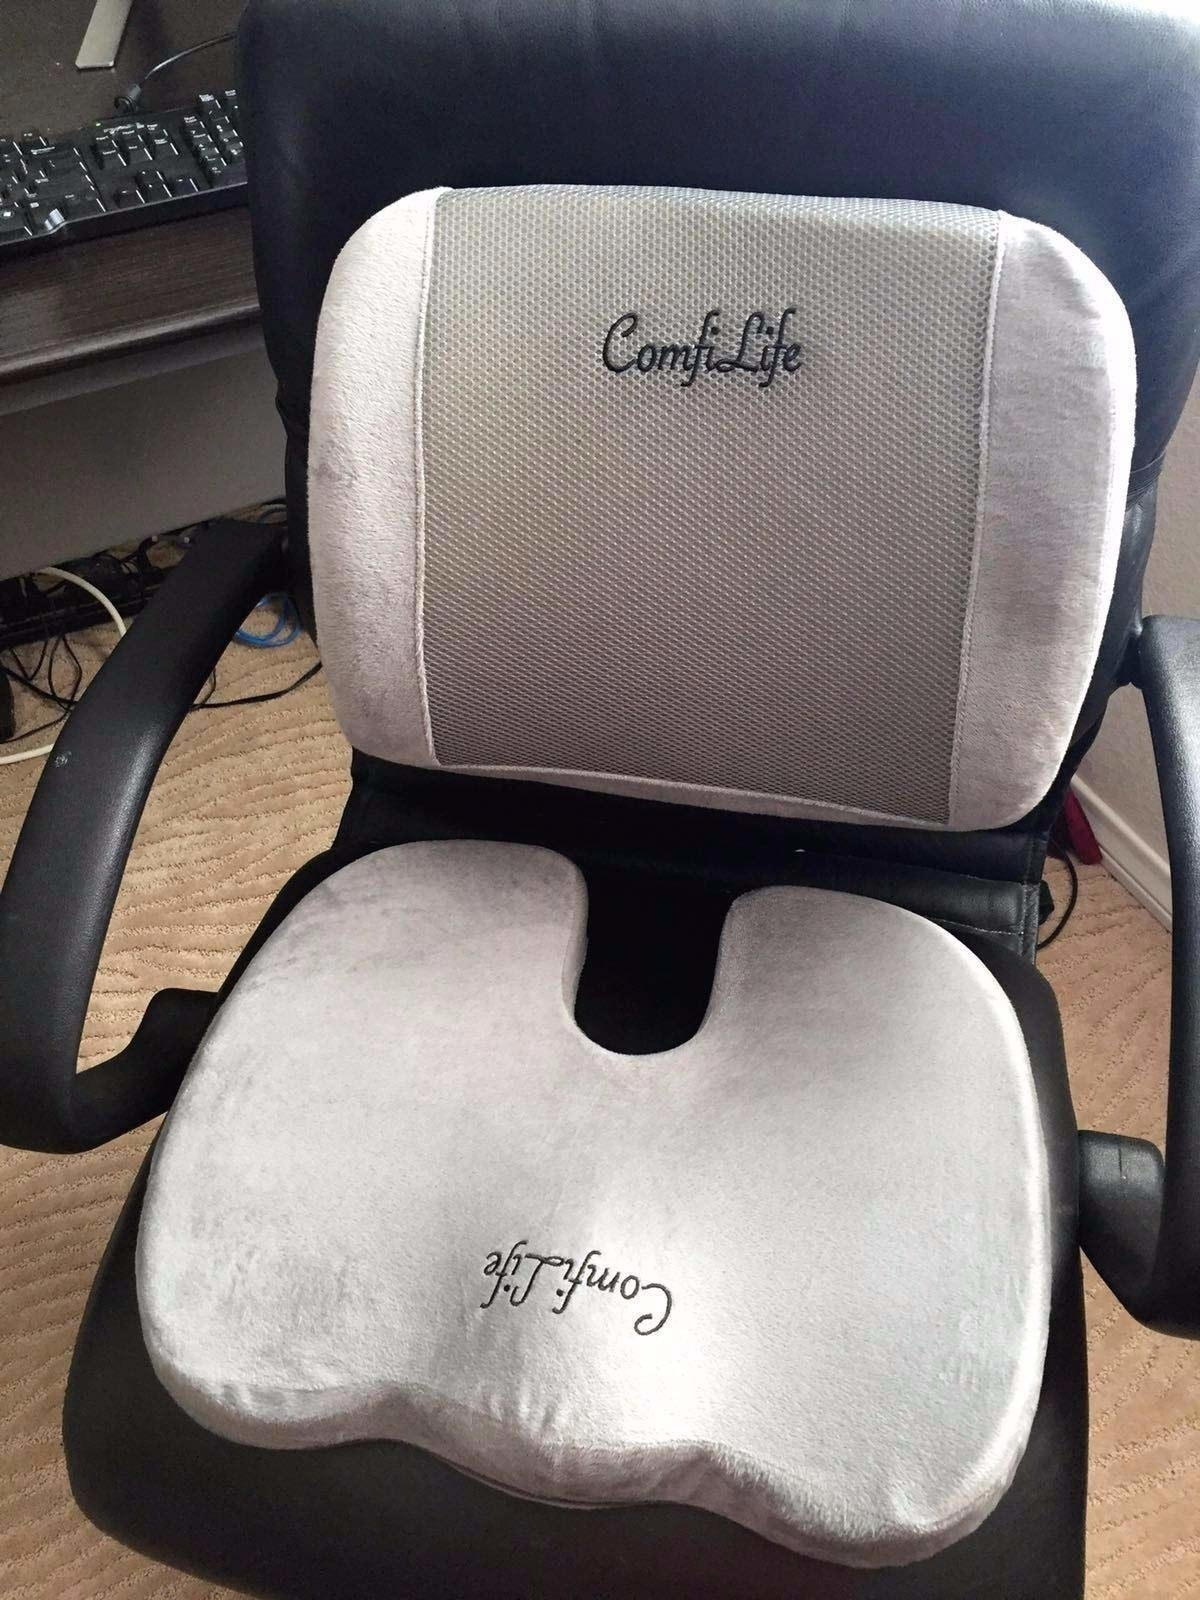 Reviewer photo of lumbar pillow and seat cushion placed on office chair